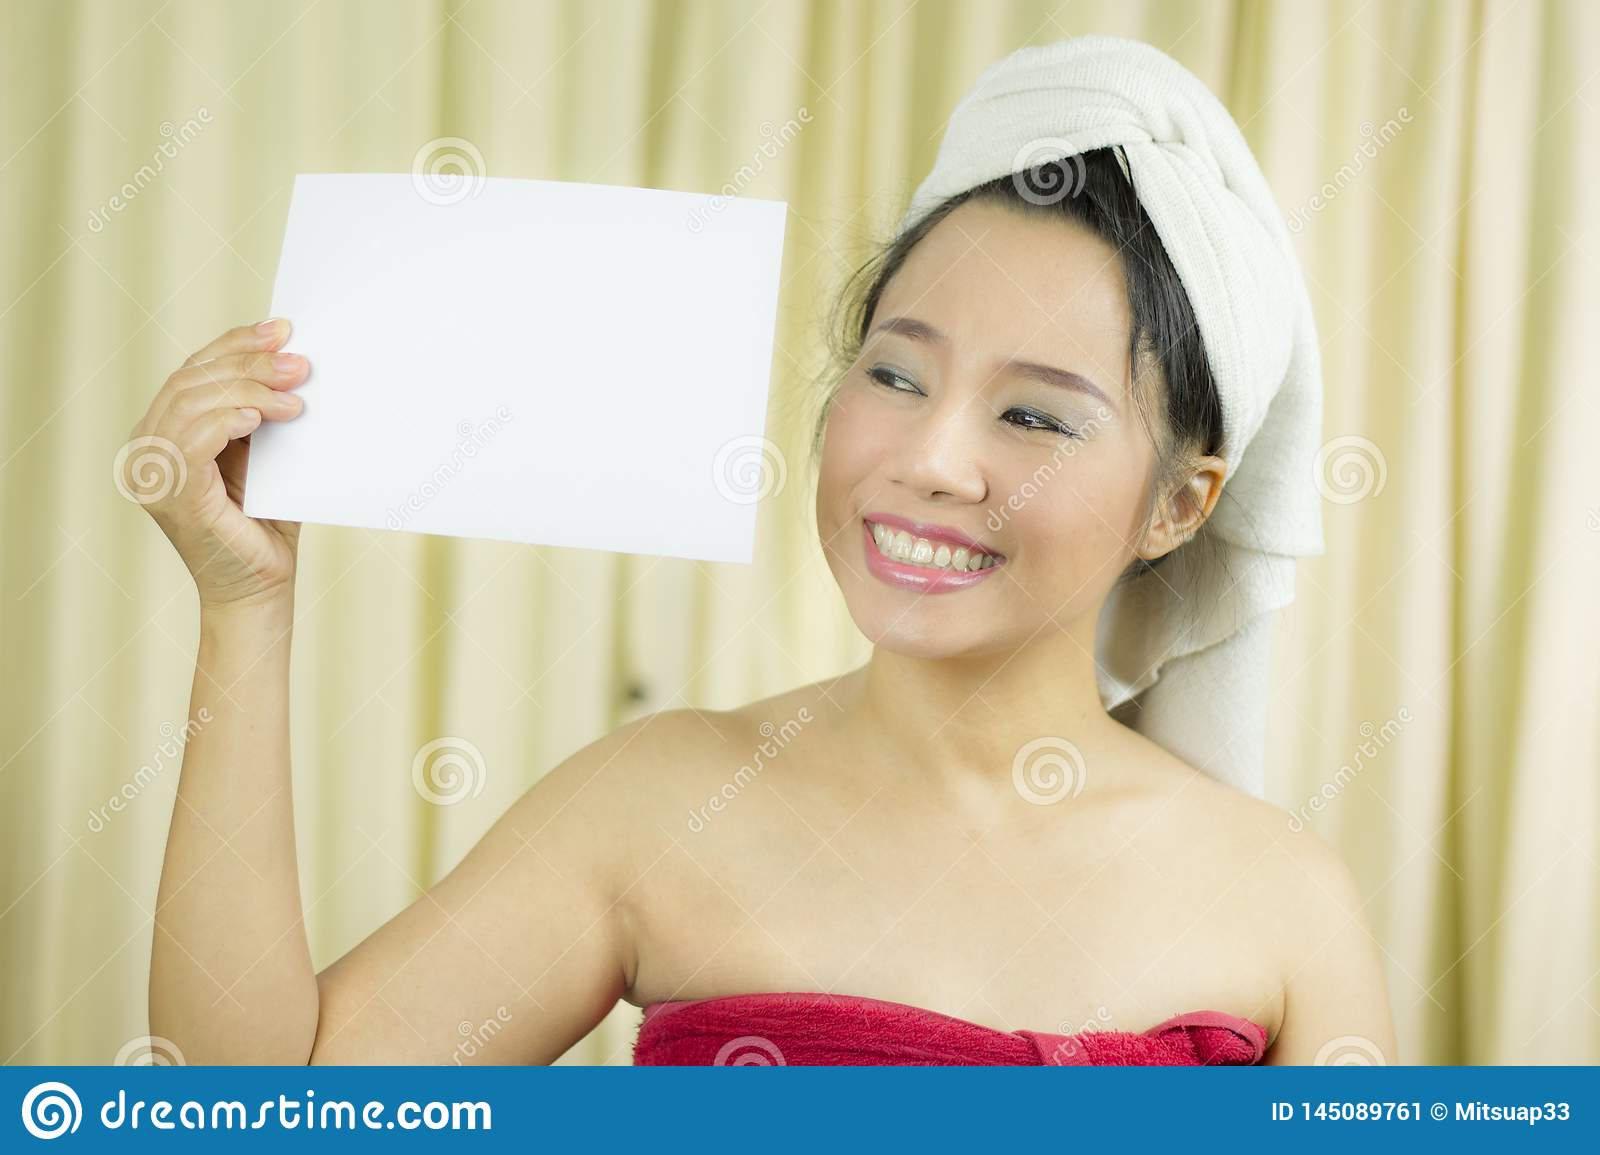 Asian woman wear a skirt to cover her breast after wash hair, Wrapped in Towels After Shower holding empty blank banner and acting